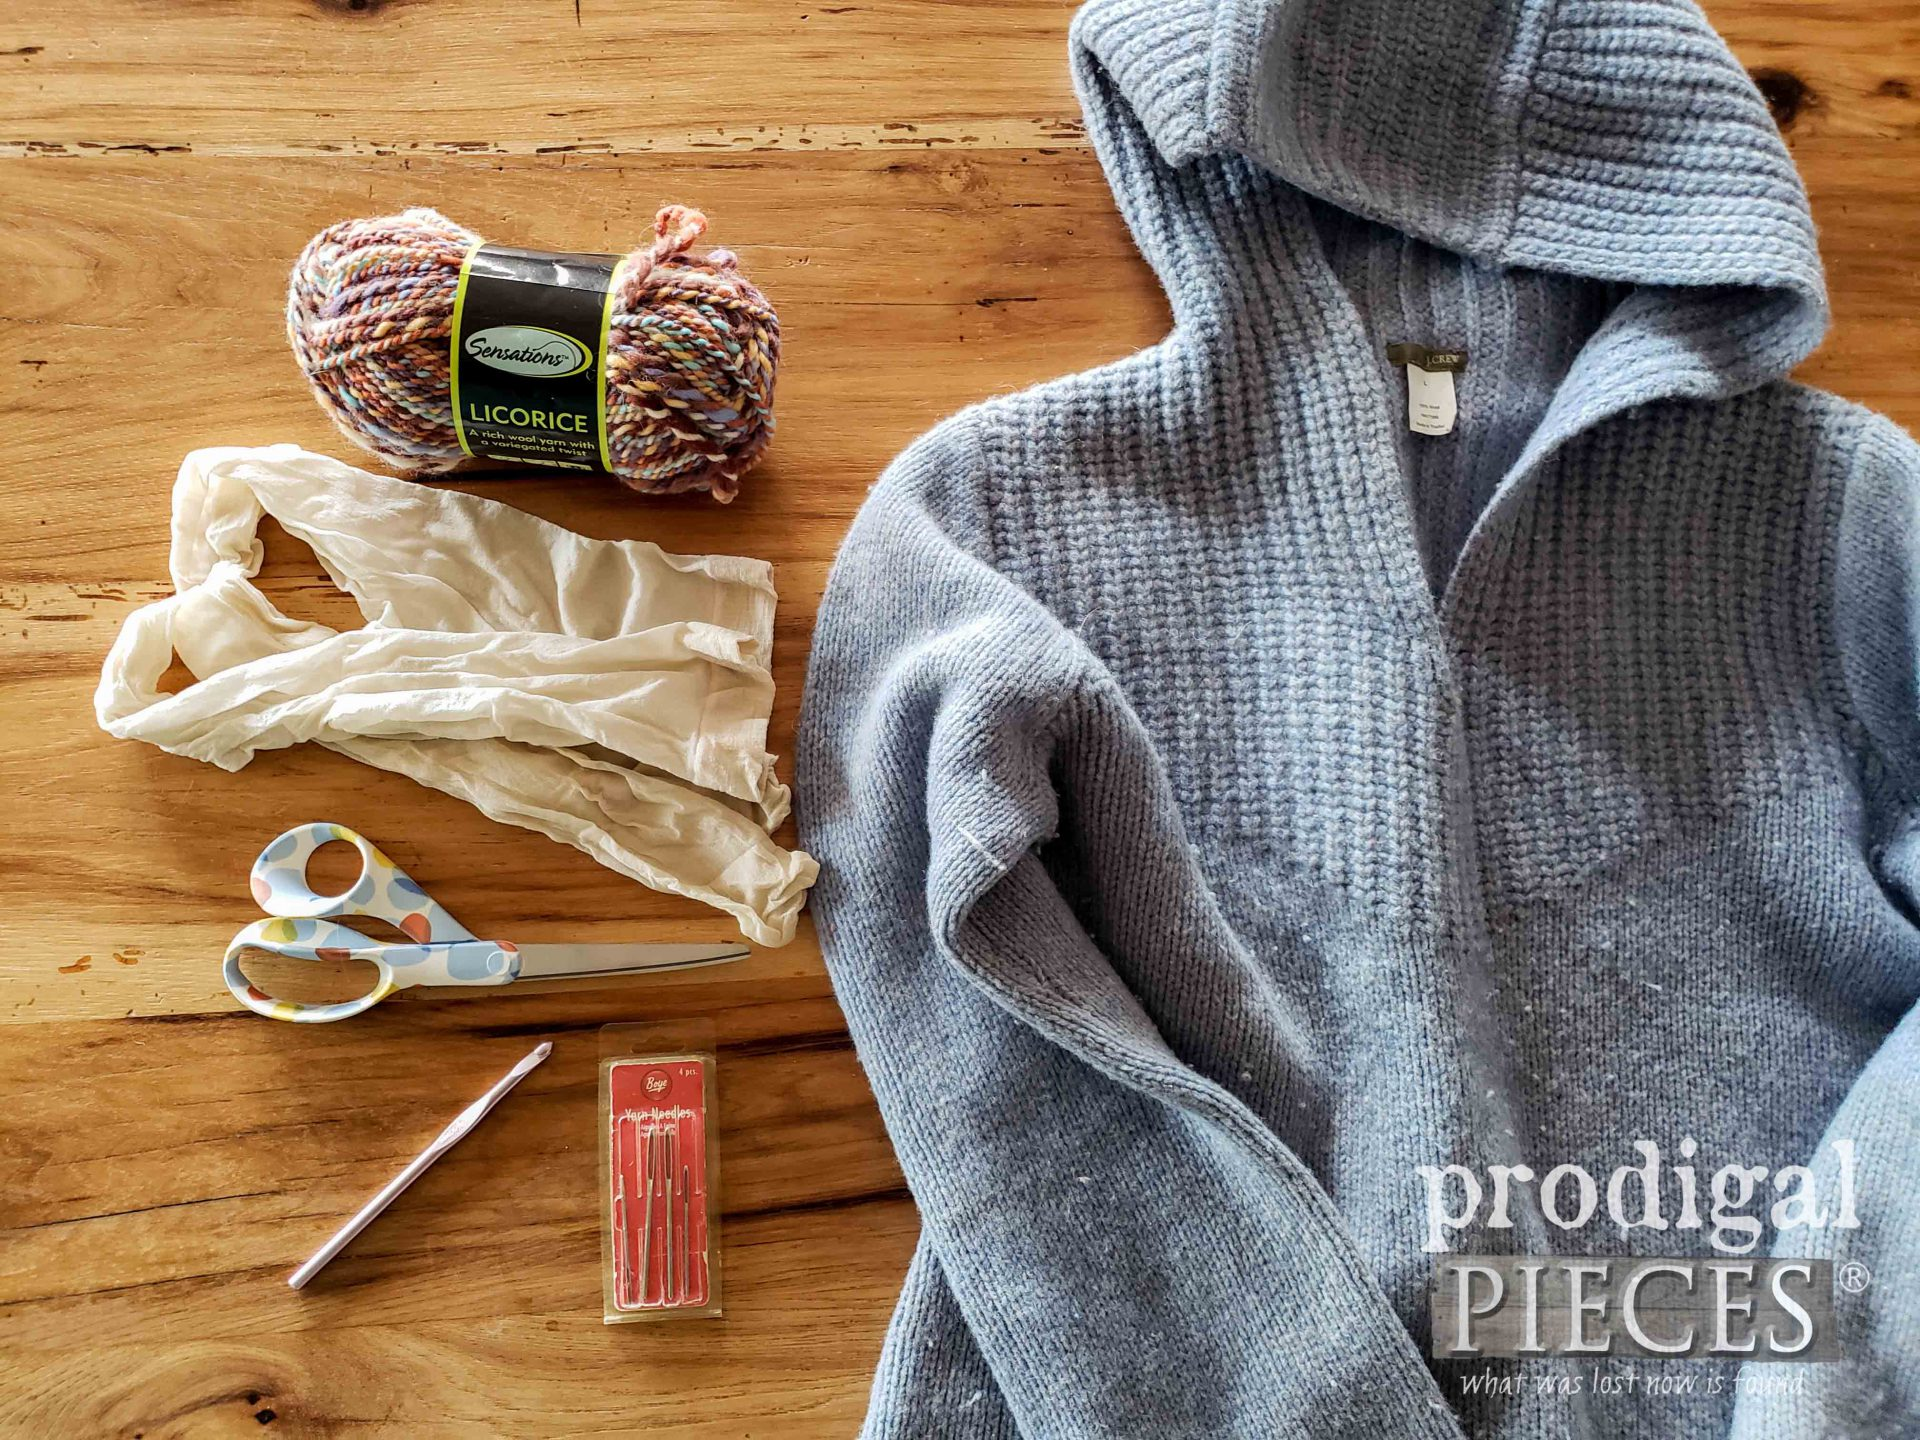 DIY Wool Dryer Ball from Upcycled Sweater Supplies by Larissa of Prodigal Pieces | prodigalpieces.com